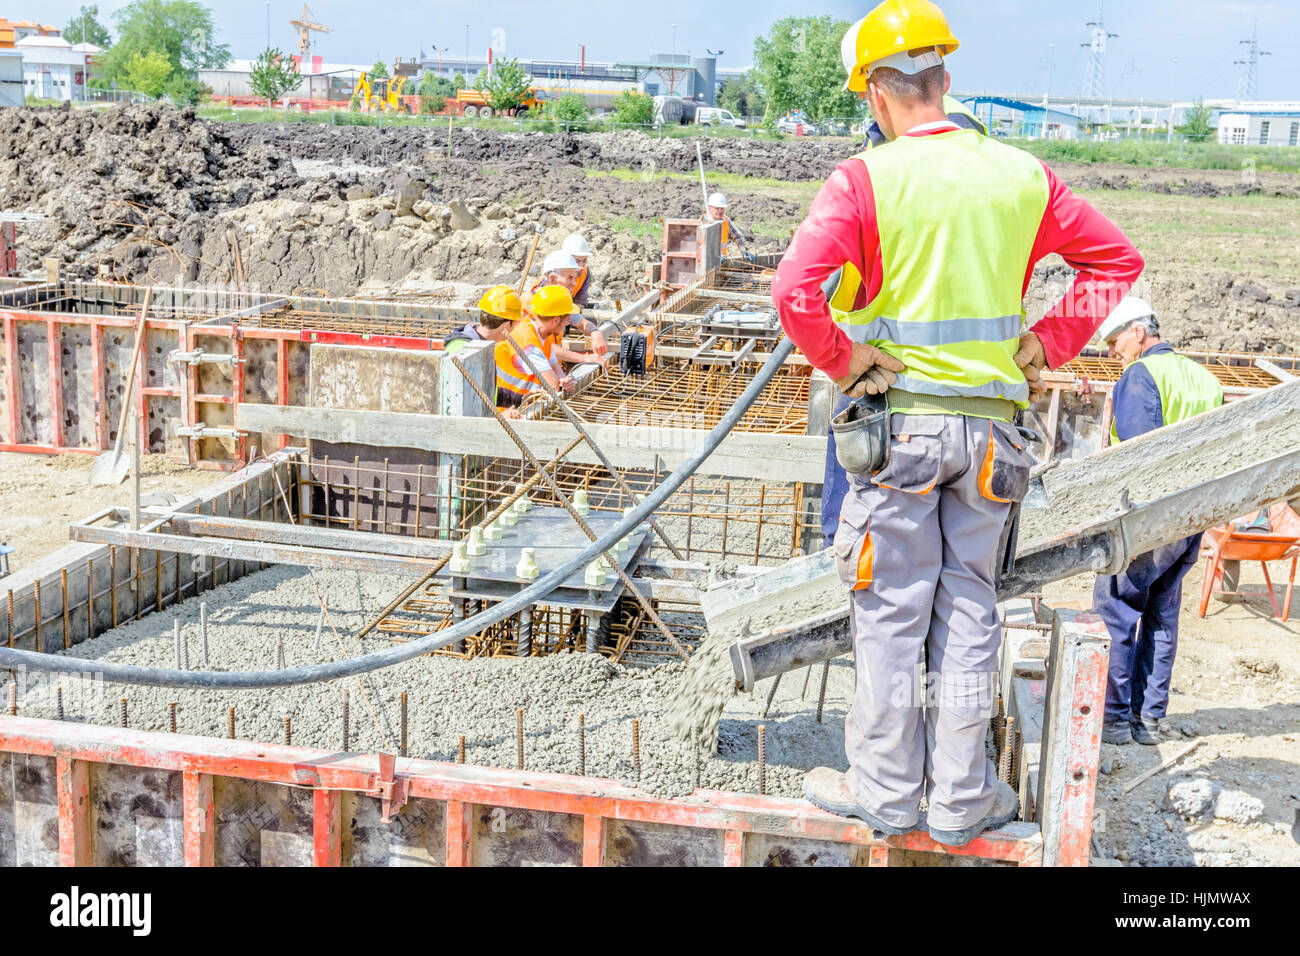 Zrenjanin, Vojvodina, Serbia - May 29, 2015: Workers at building site are pouring concrete in mold from mixer truck. Stock Photo